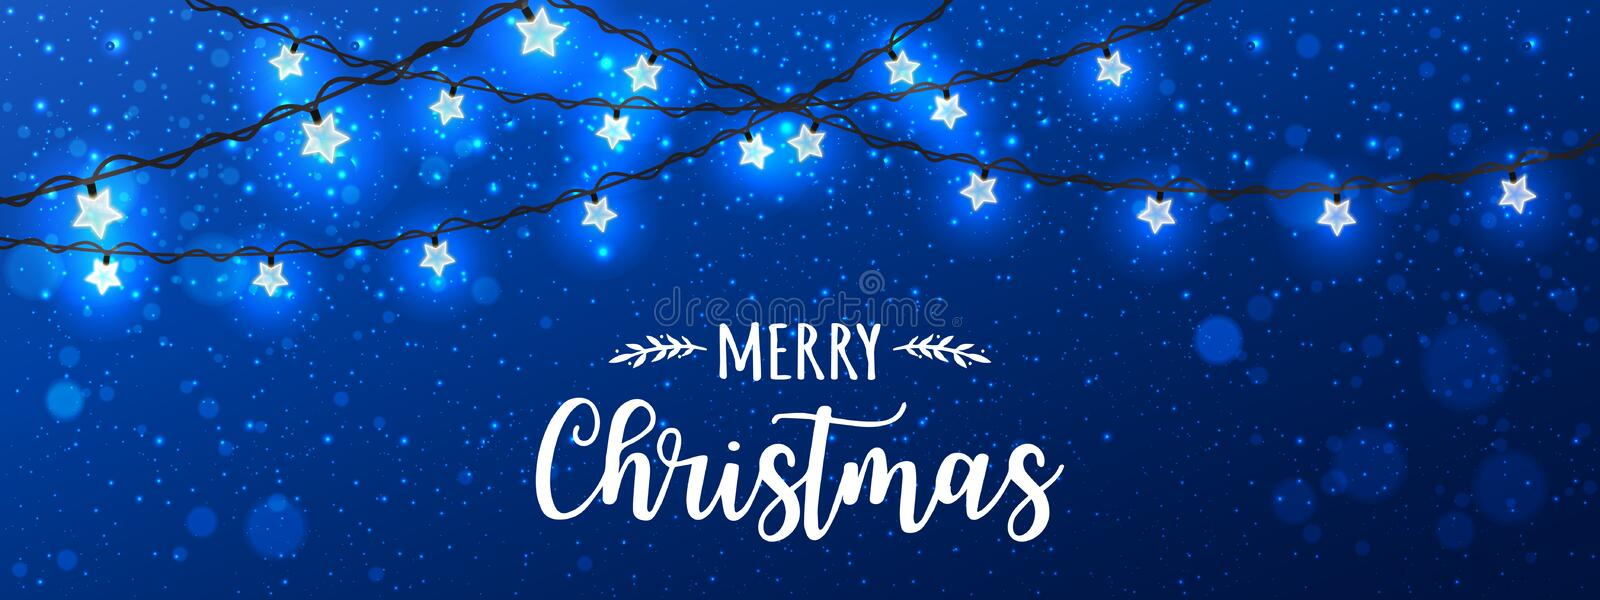 Merry Christmas Typographical on blue background with Xmas decorations glowing white garlands, light, stars stock illustration